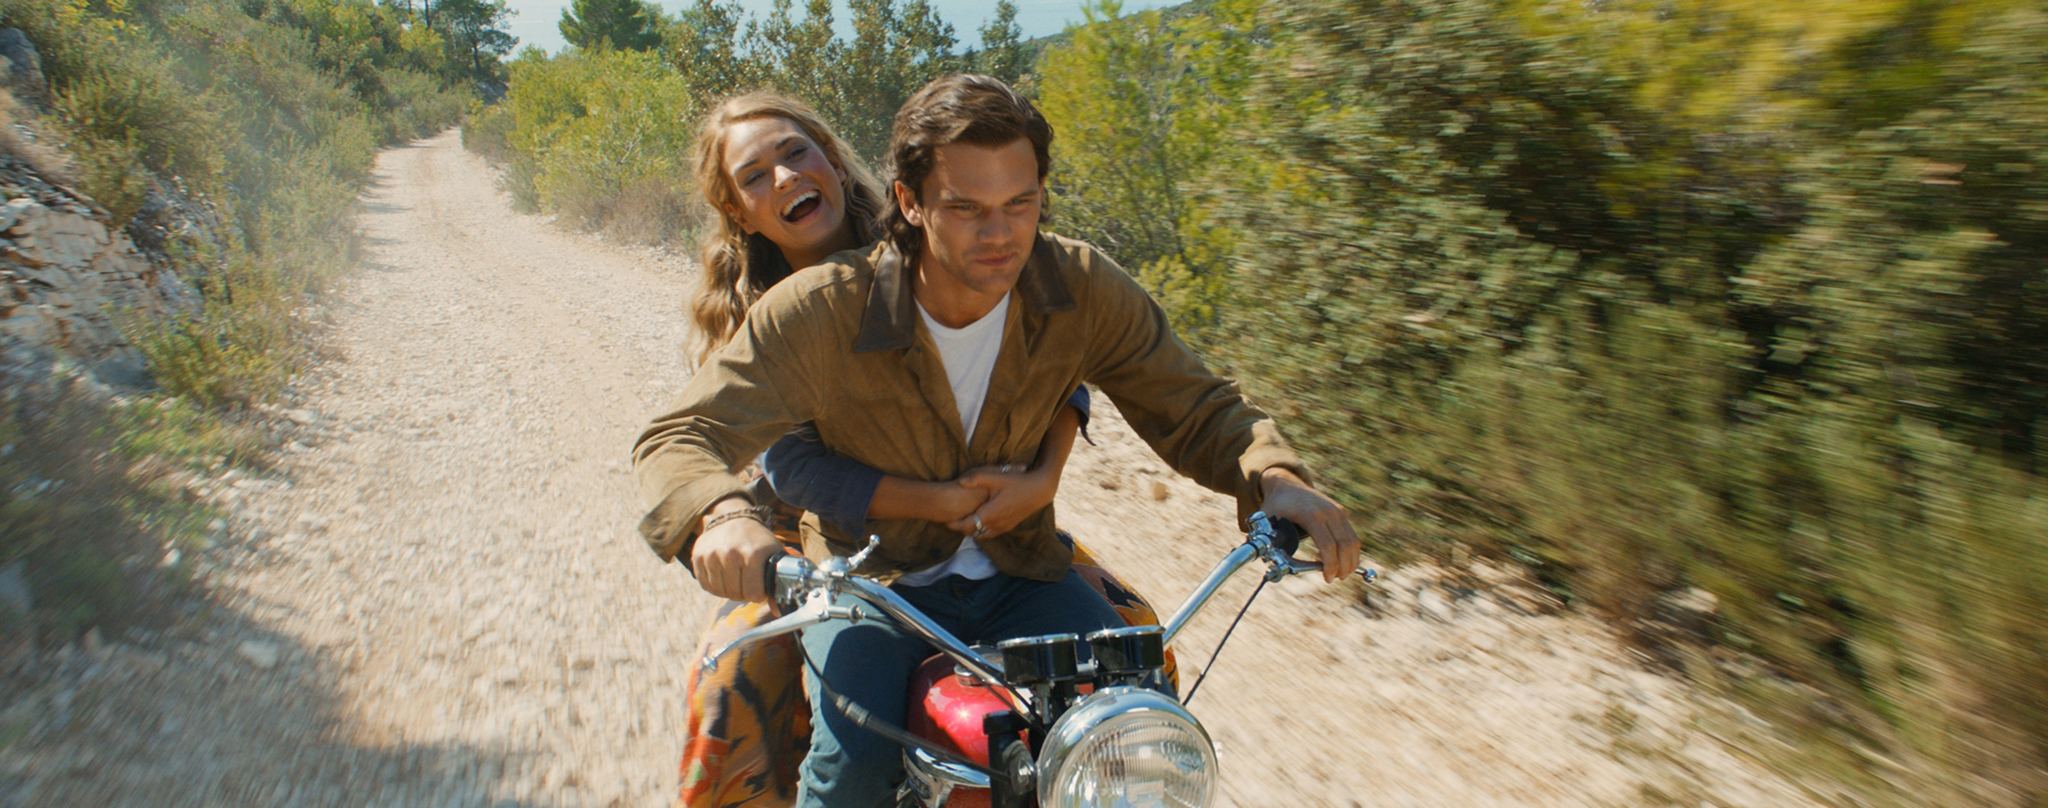 Jeremy Irvine and Lily James in Mamma Mia! Here We Go Again (2018)